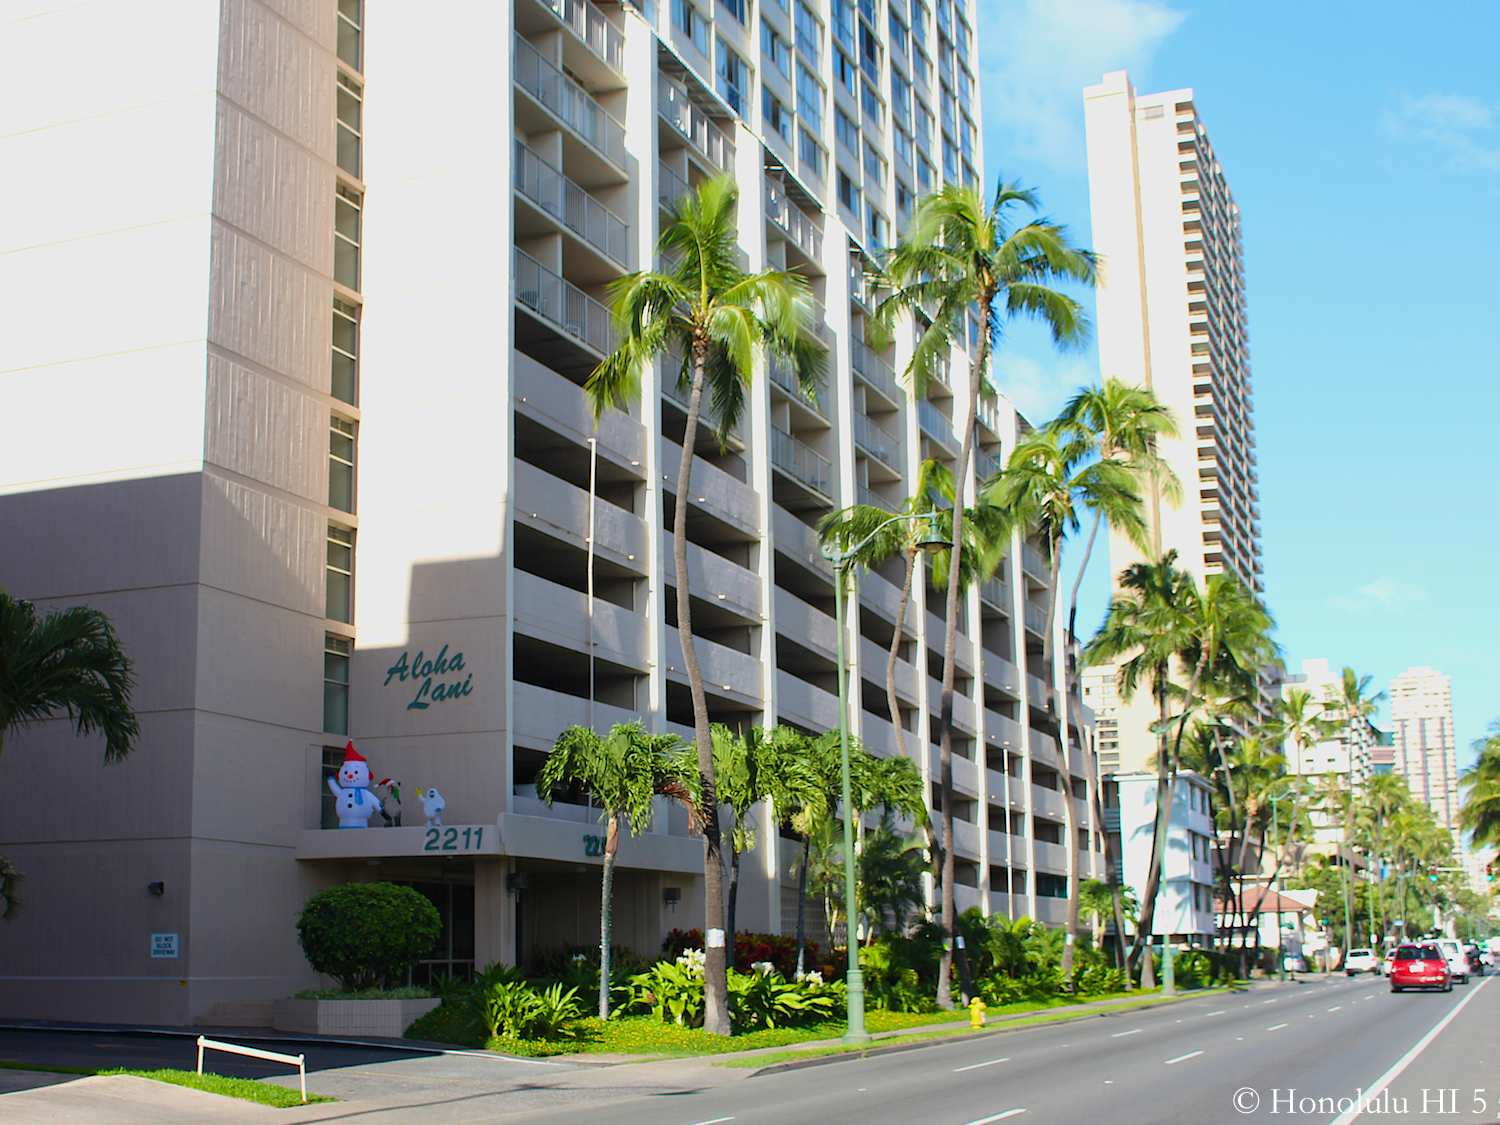 Aloha Lani Condo Entrance and Lower Part of Building with Ala Wai Boulevard In Front of Building